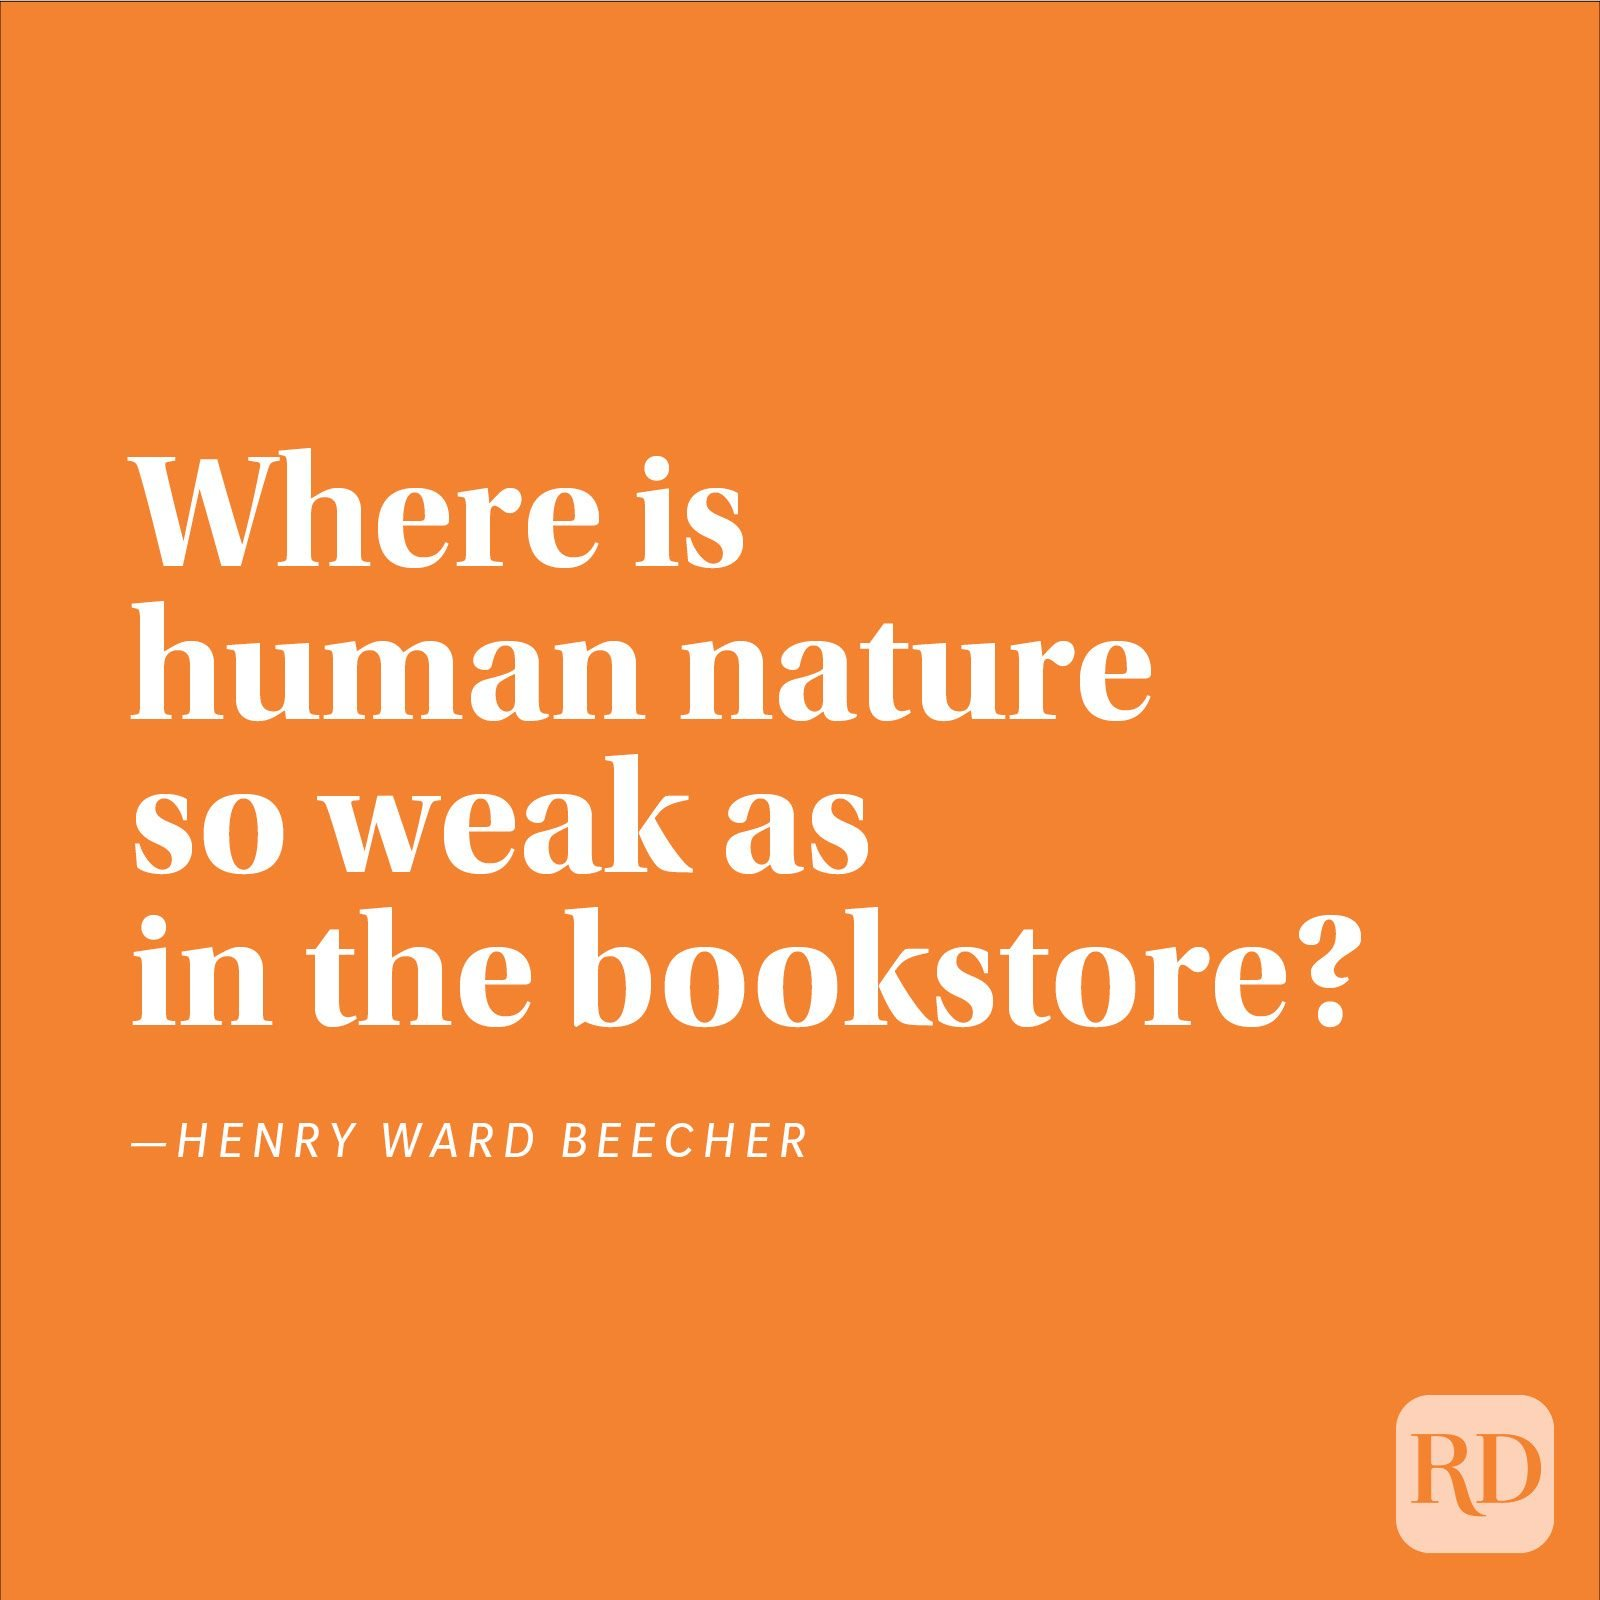 """Where is human nature so weak as in the bookstore?"" —Henry Ward Beecher"